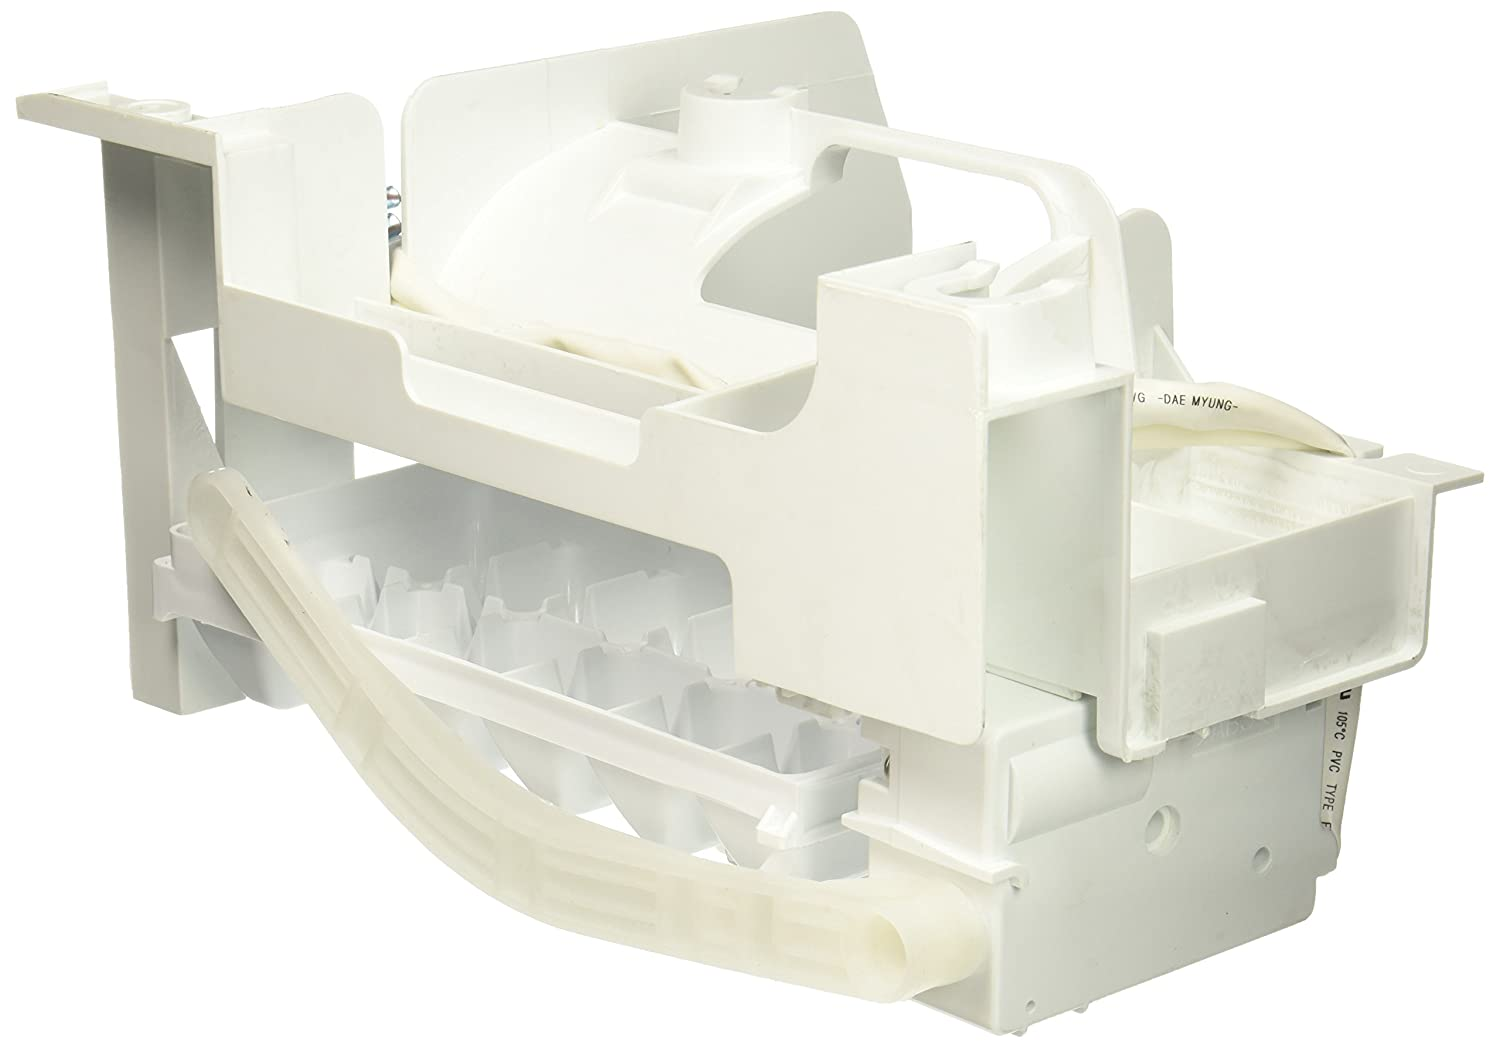 LG 5989JA1005H Ice Maker Assembly, Kit